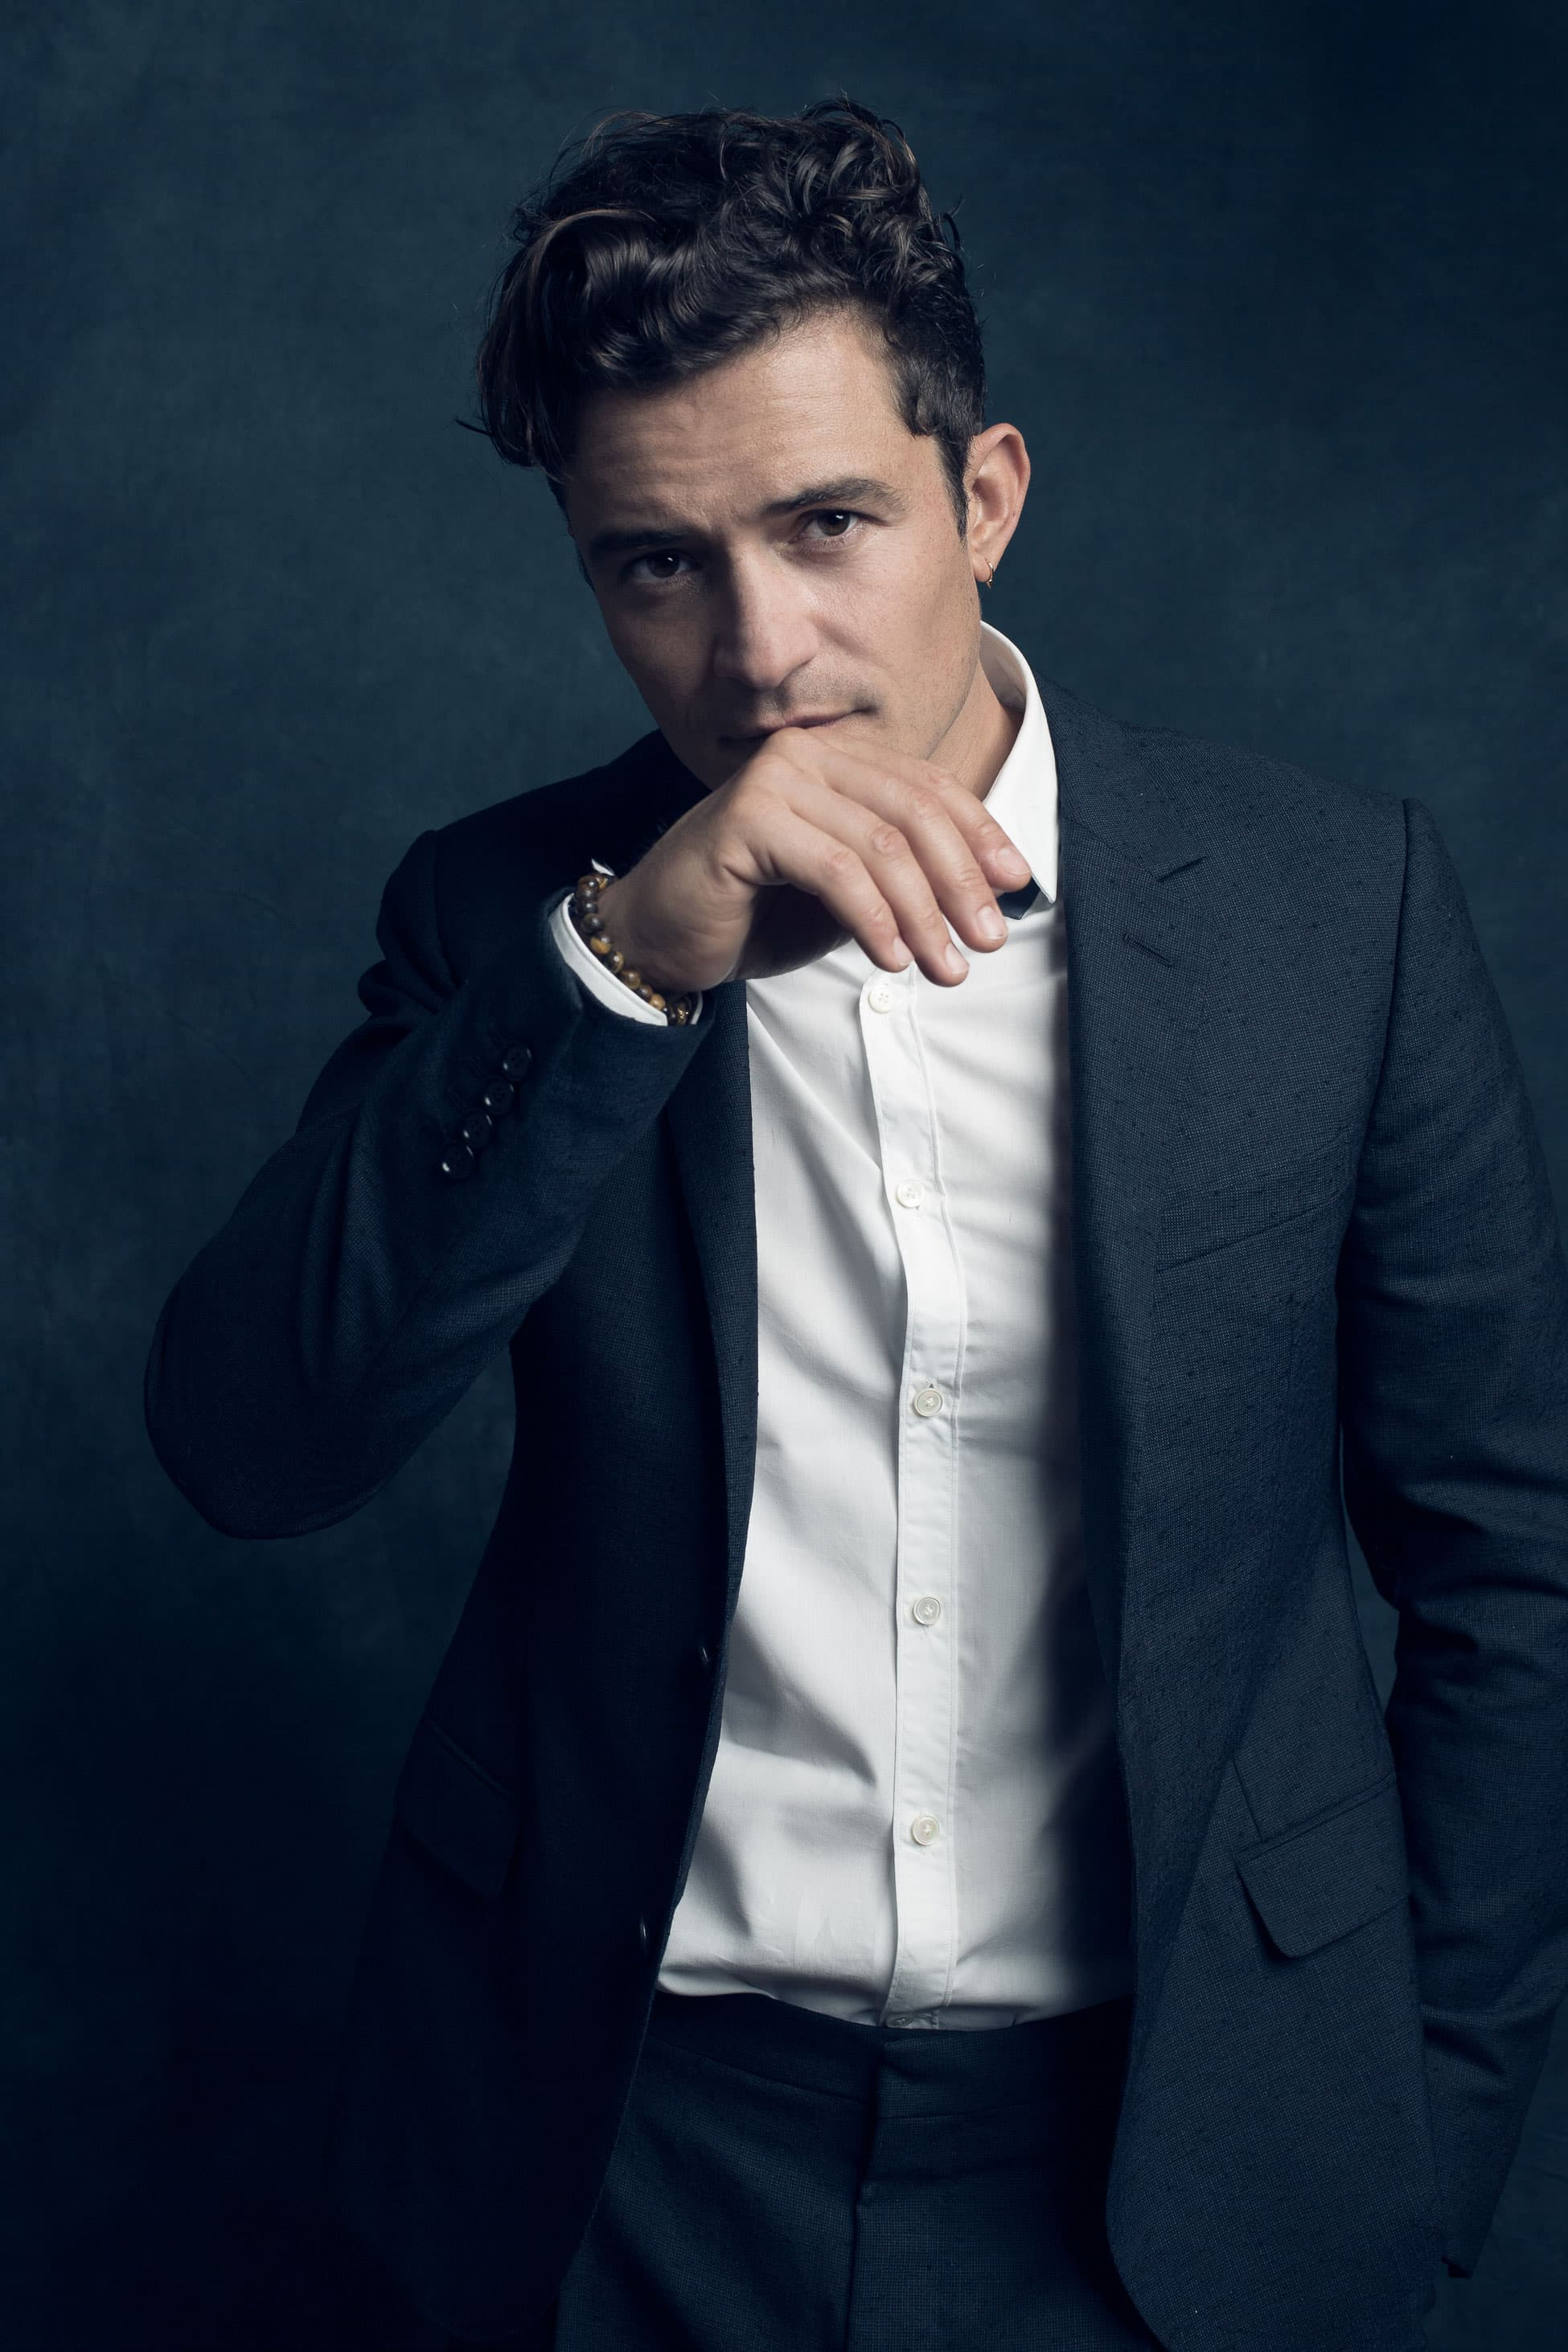 orlando bloom beard photo - 1